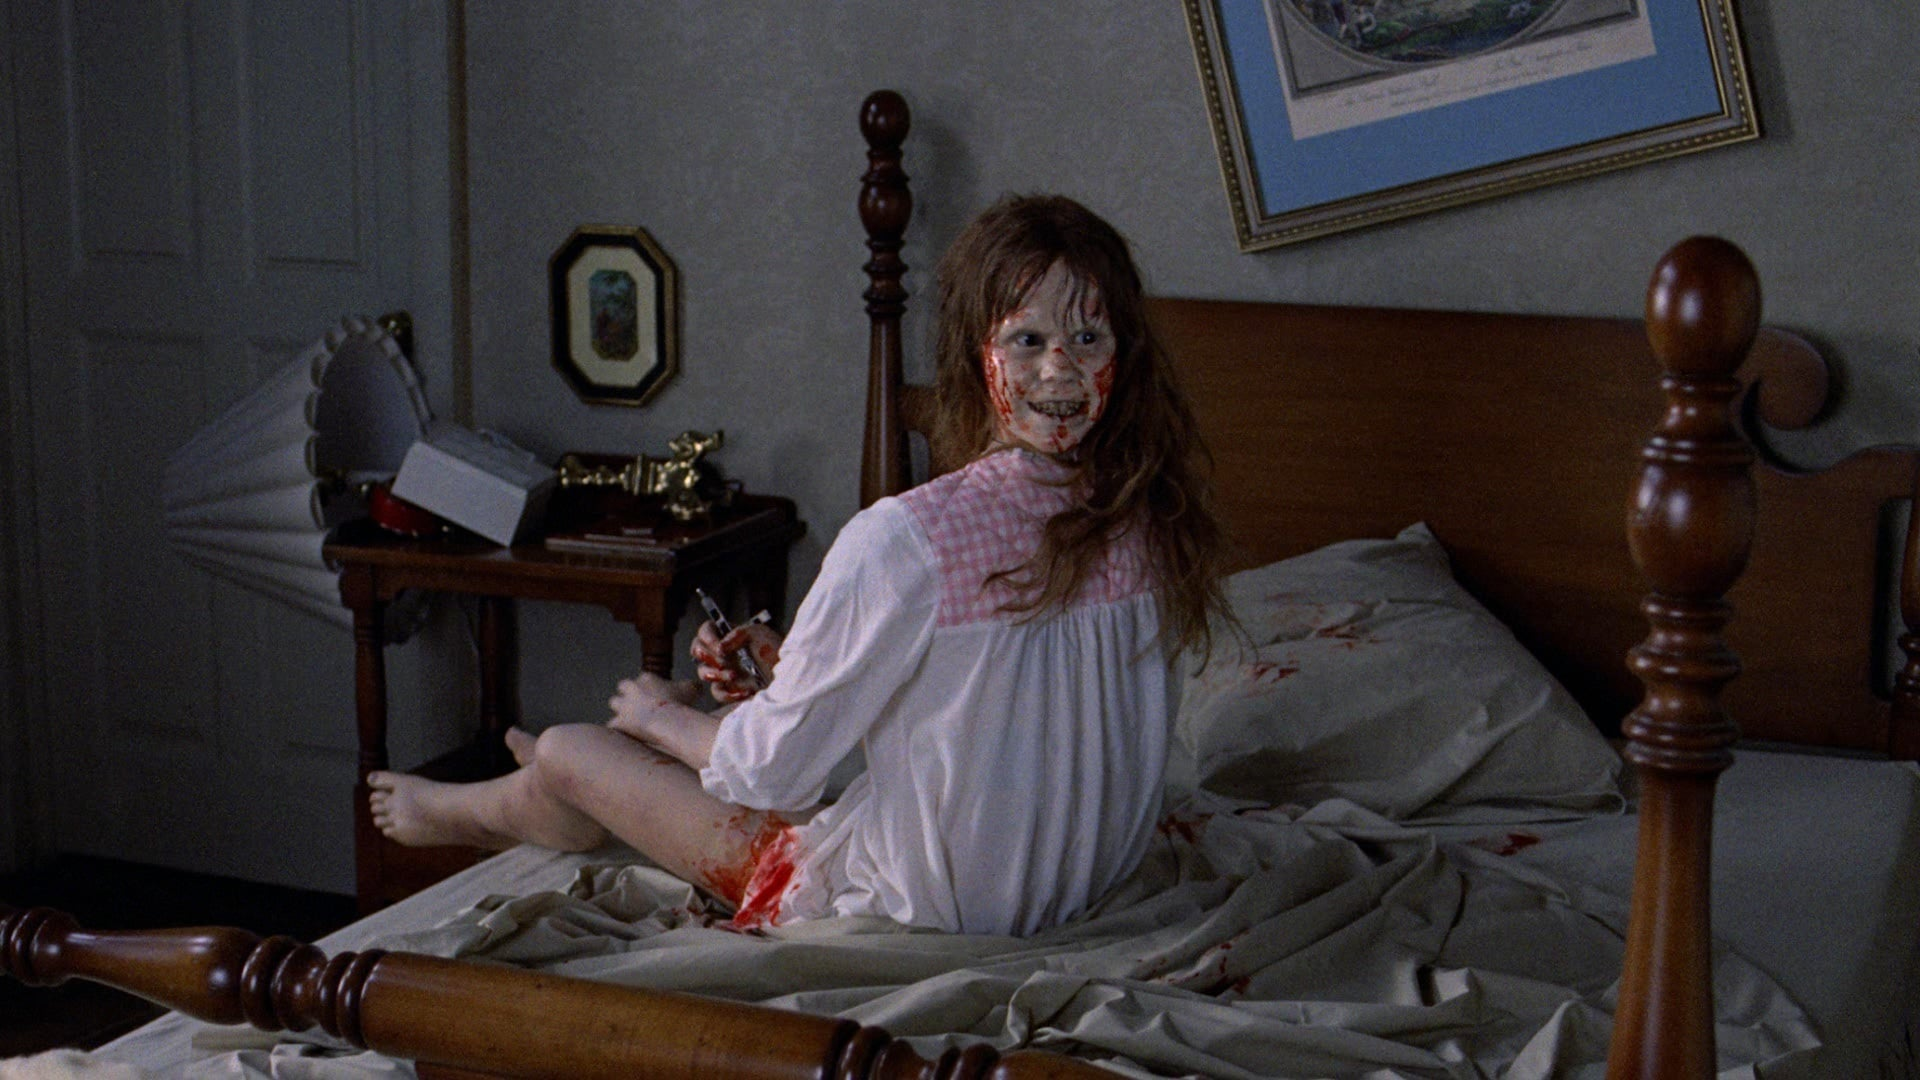 William Friedkin's The Exorcist